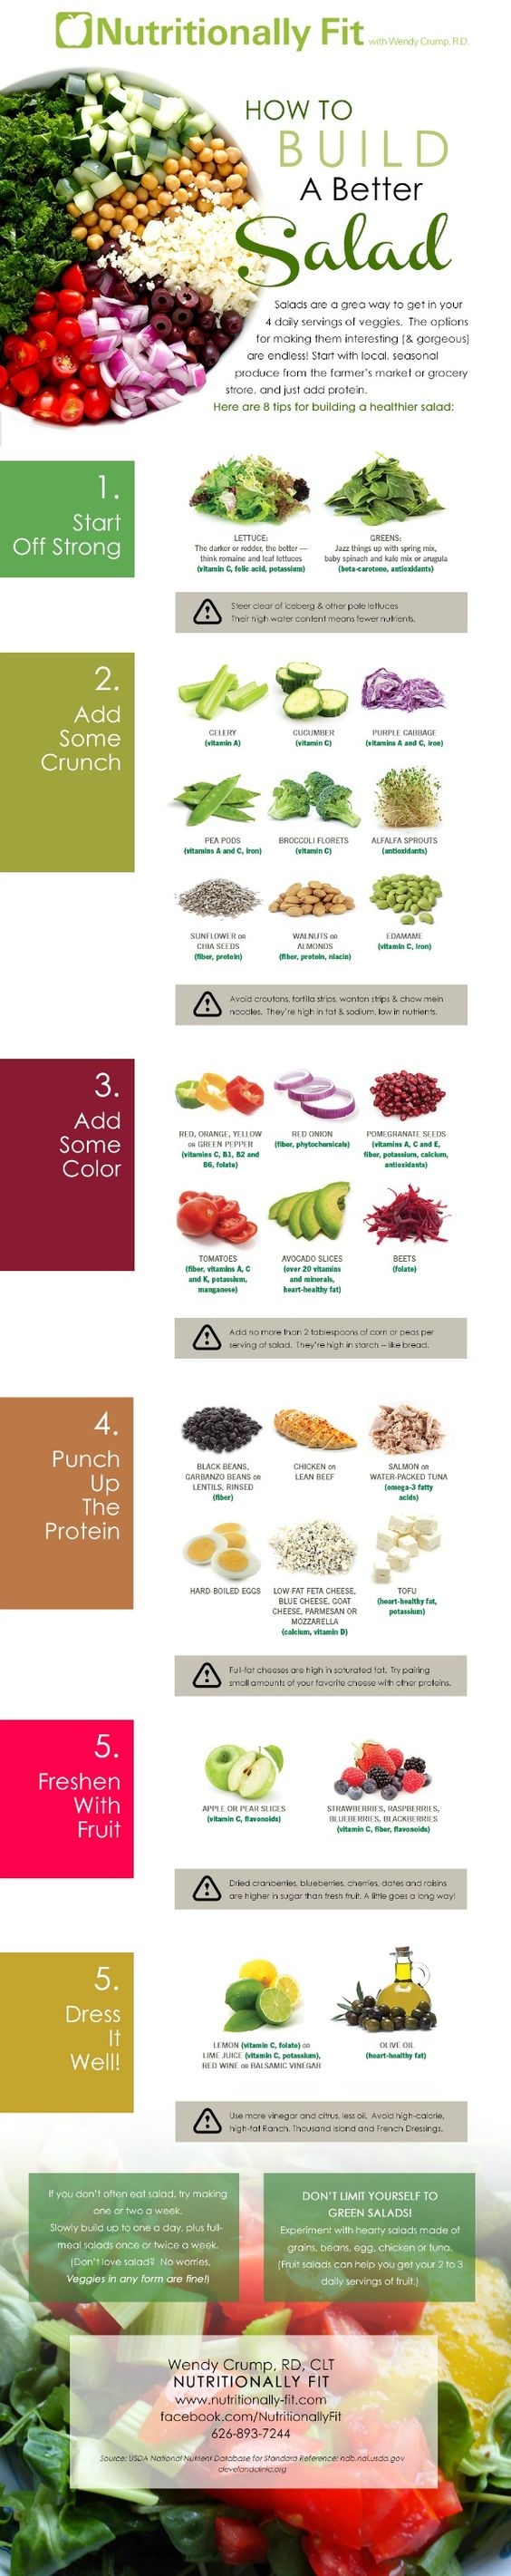 How to build a better salad infographic #nutrition #healthyeating: